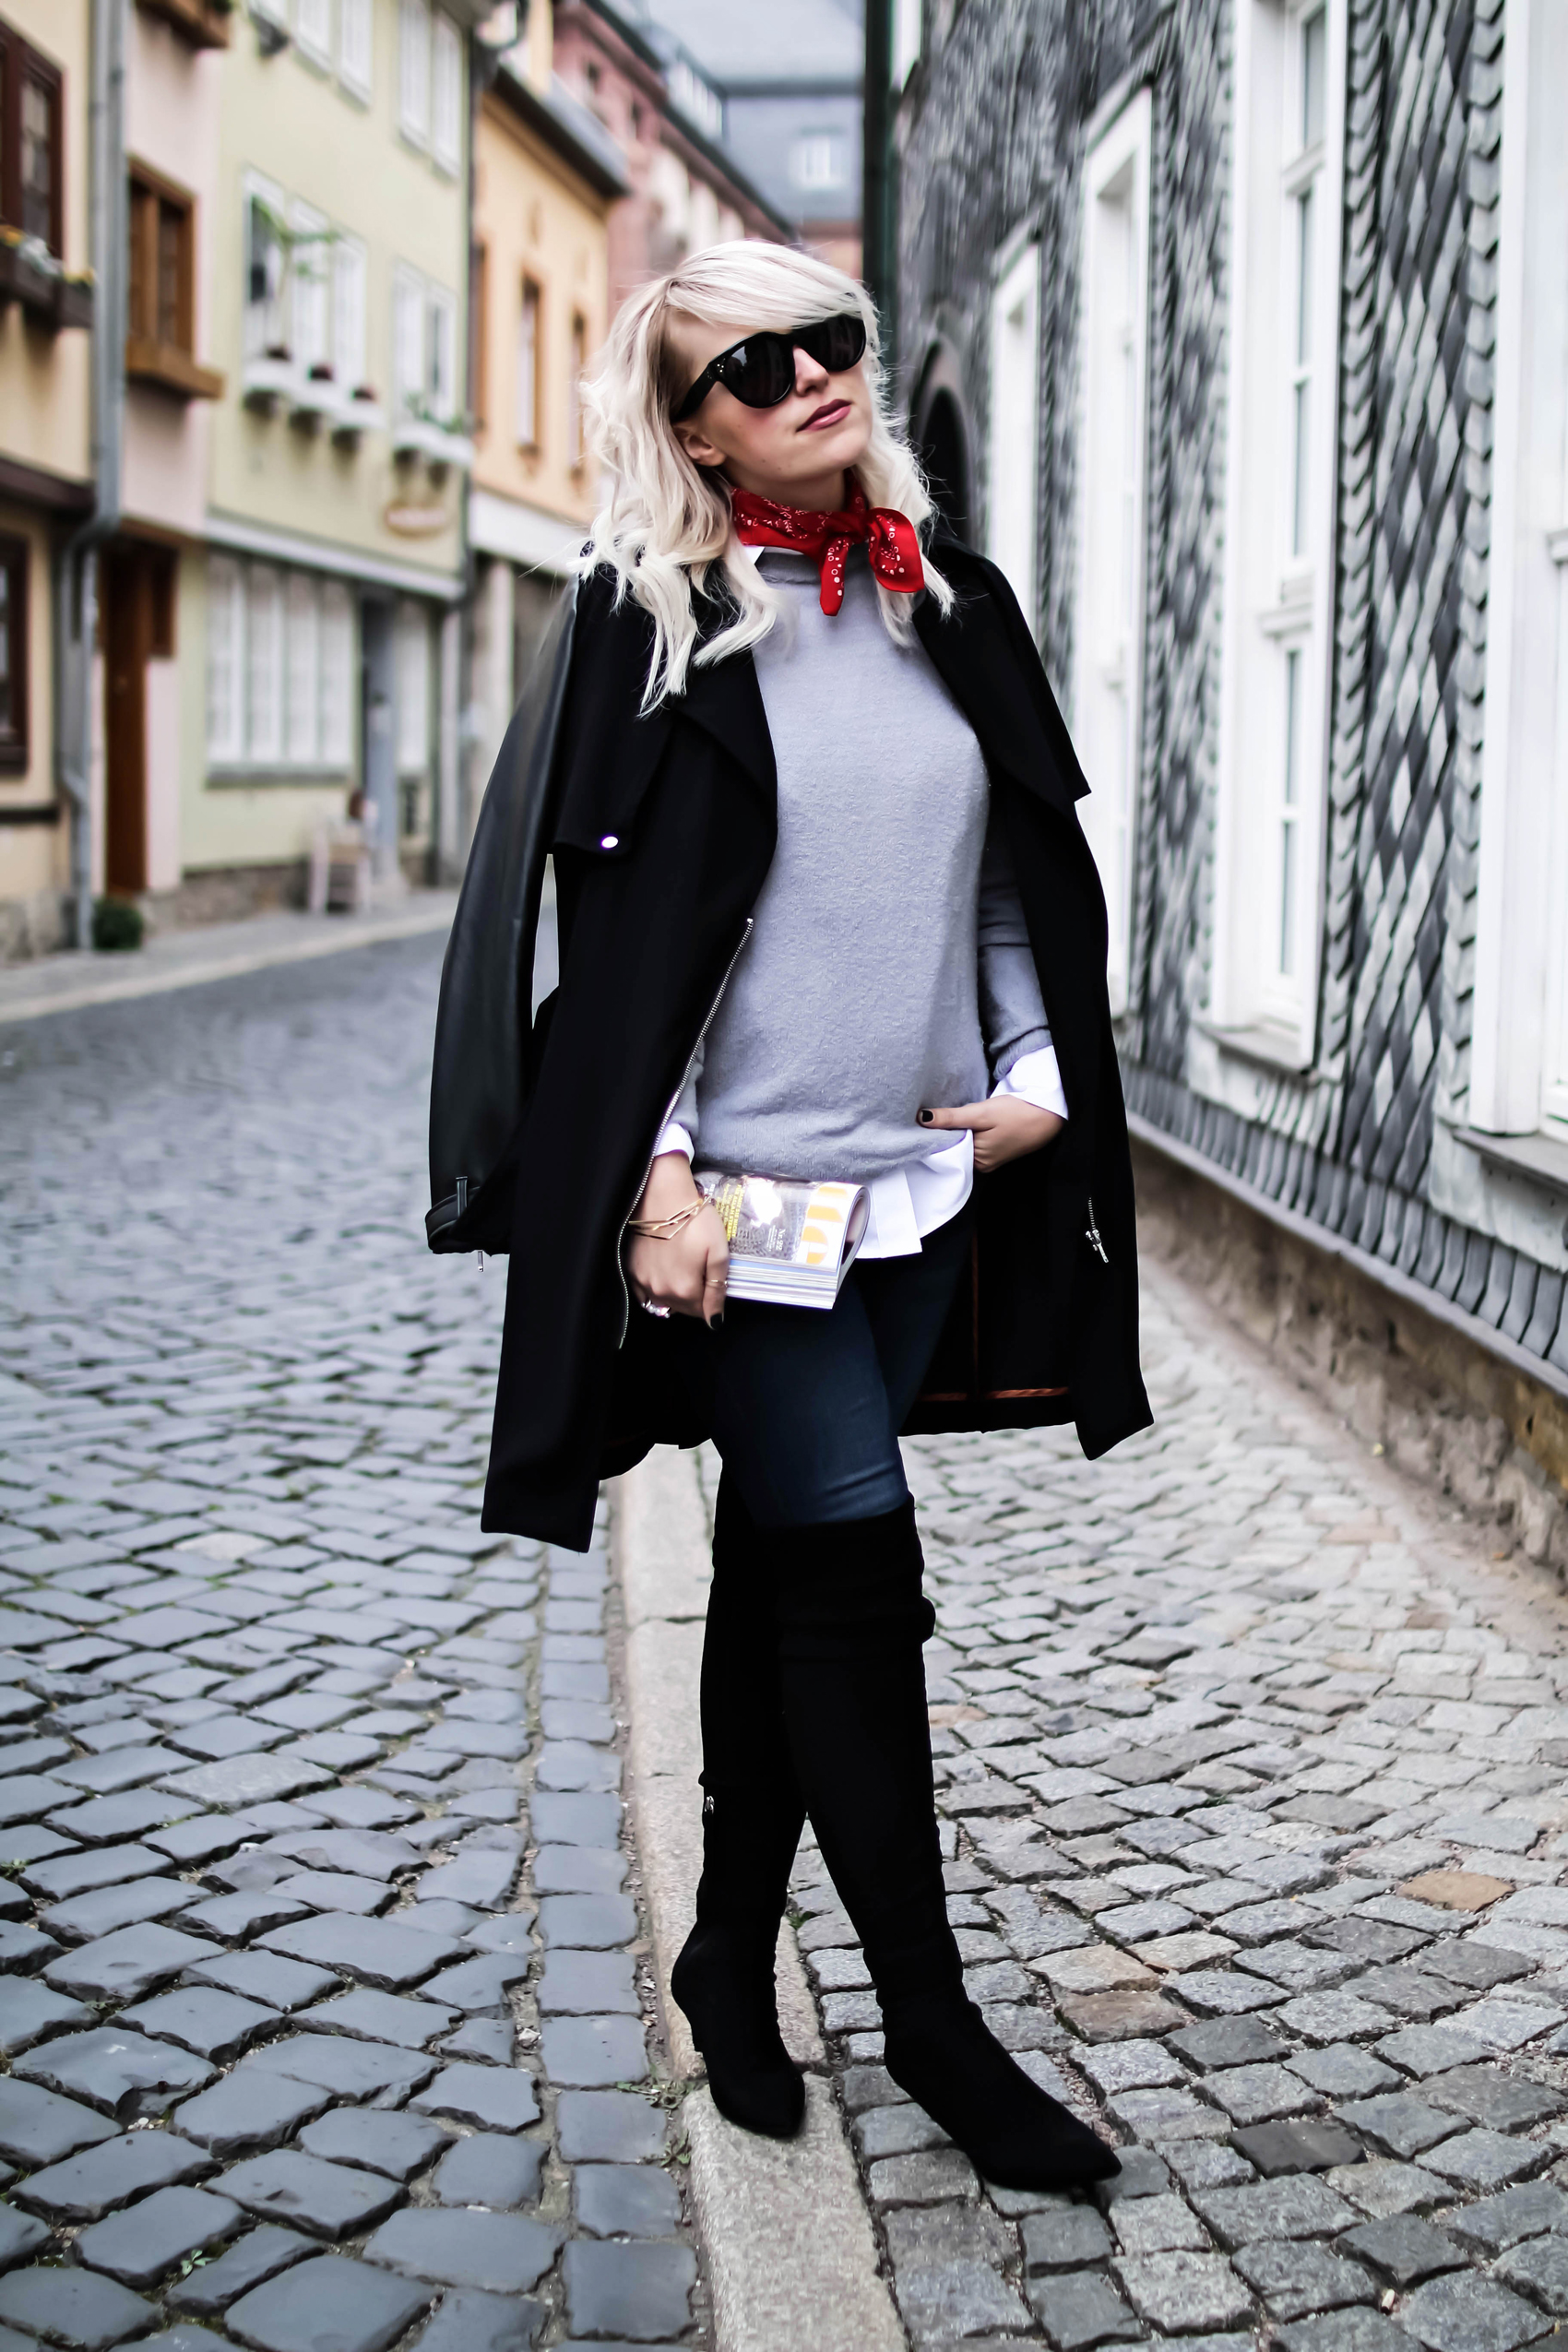 Fashion Thoughts in Overknees